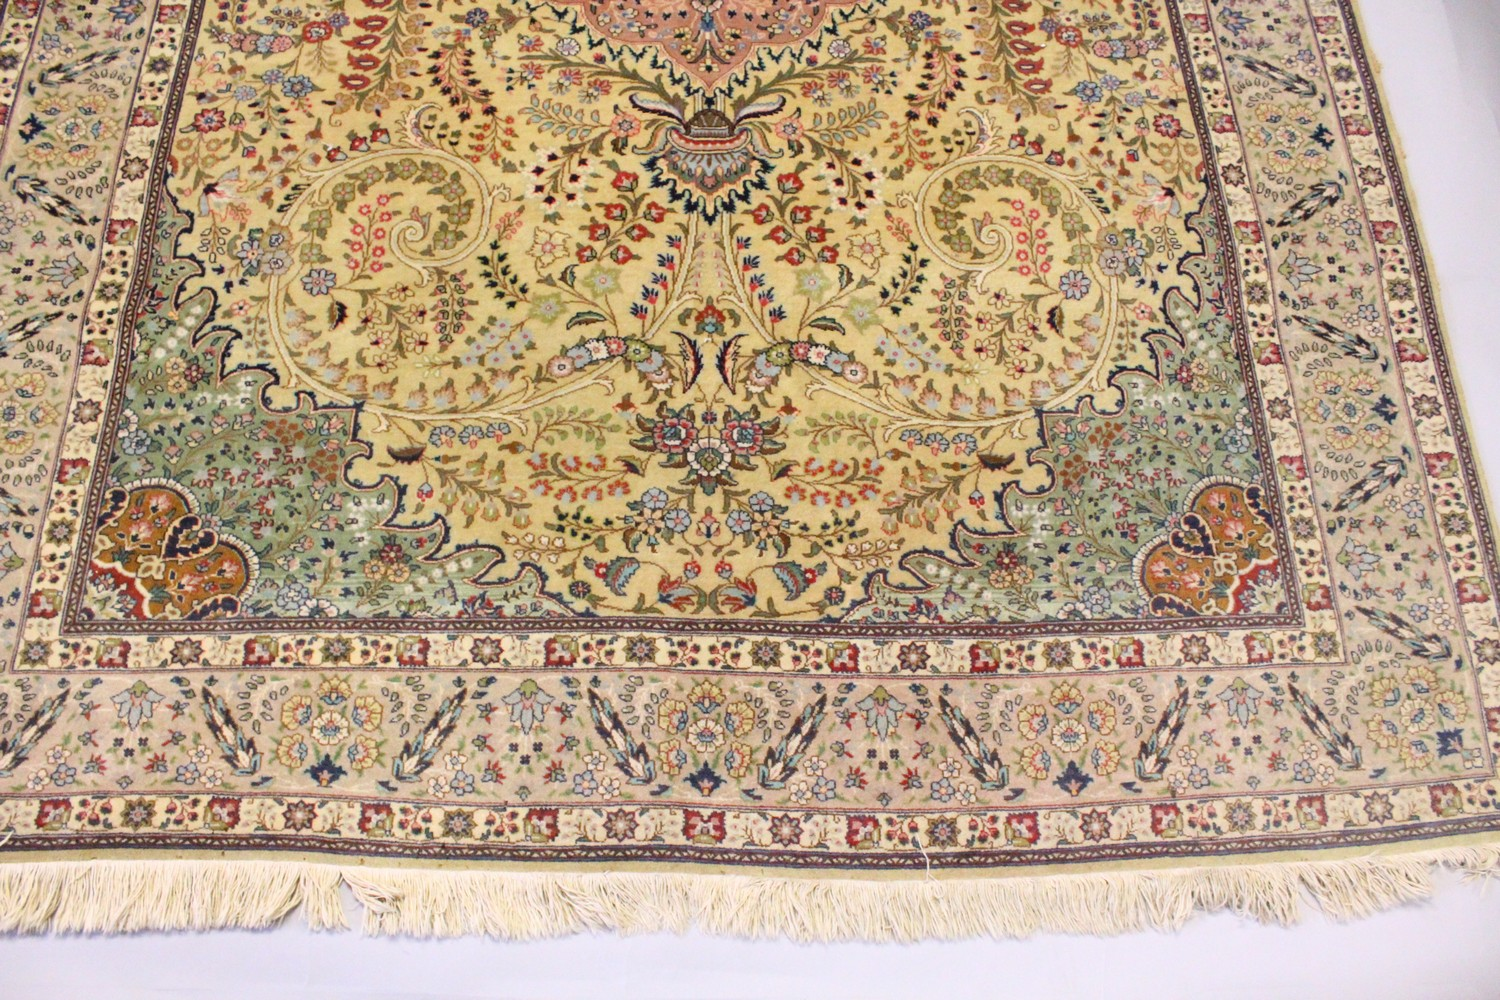 Lot 1031 - A GOOD PERSIAN CARPET, 20TH CENTURY, beige ground with central floral panel within a similar border.